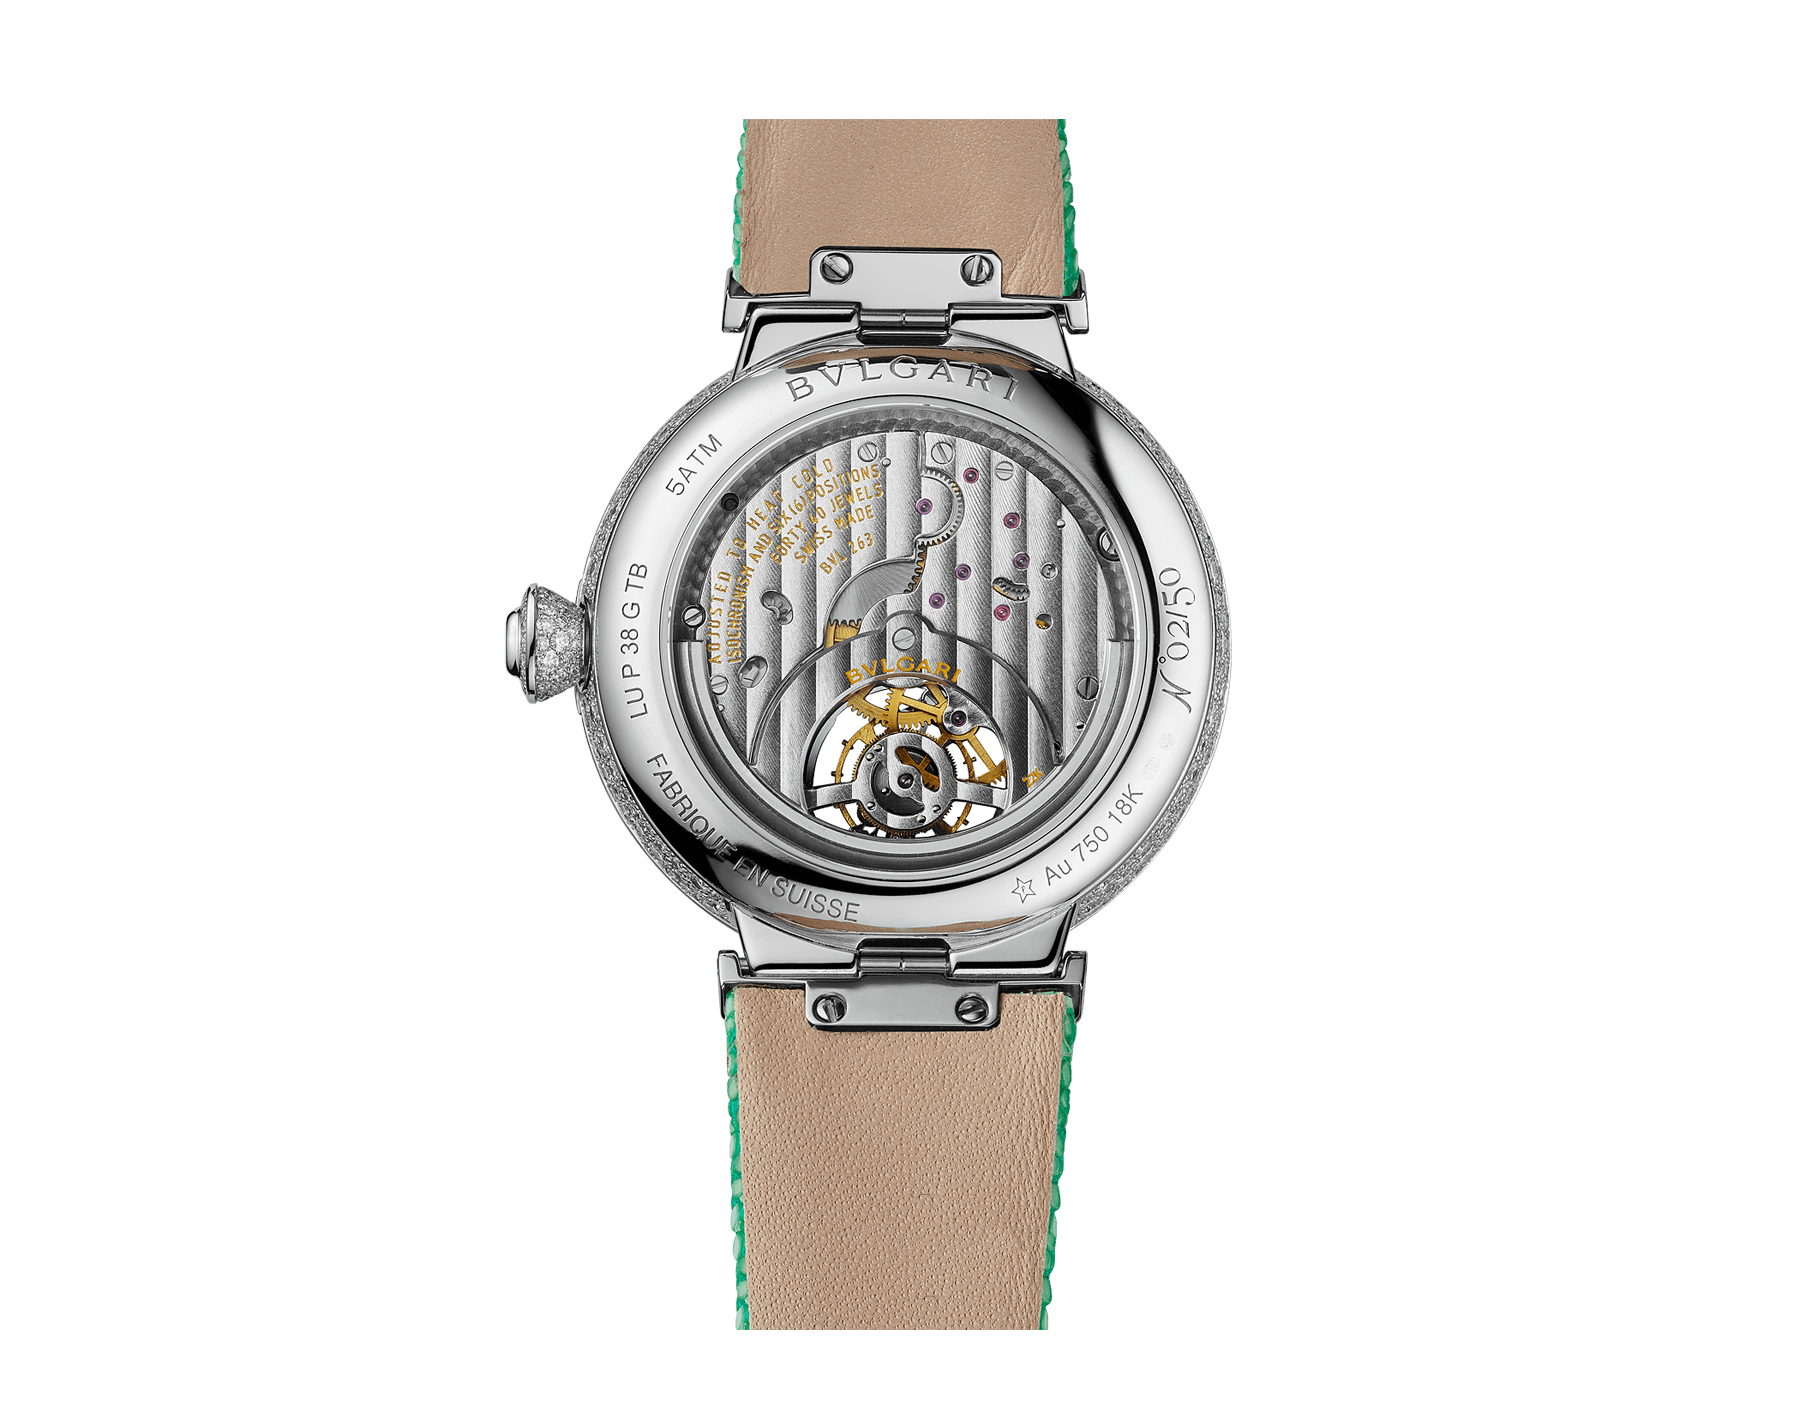 Montre LVCEA Tourbillon en édition limitée avec mouvement mécanique de manufacture, remontage automatique, tourbillon transparent, boîtier en or blanc 18 K serti de diamants ronds taille brillant, cadran pavé diamants avec diamants ronds taille brillant et finition verte, bracelet en galuchat vert 103039 image 3